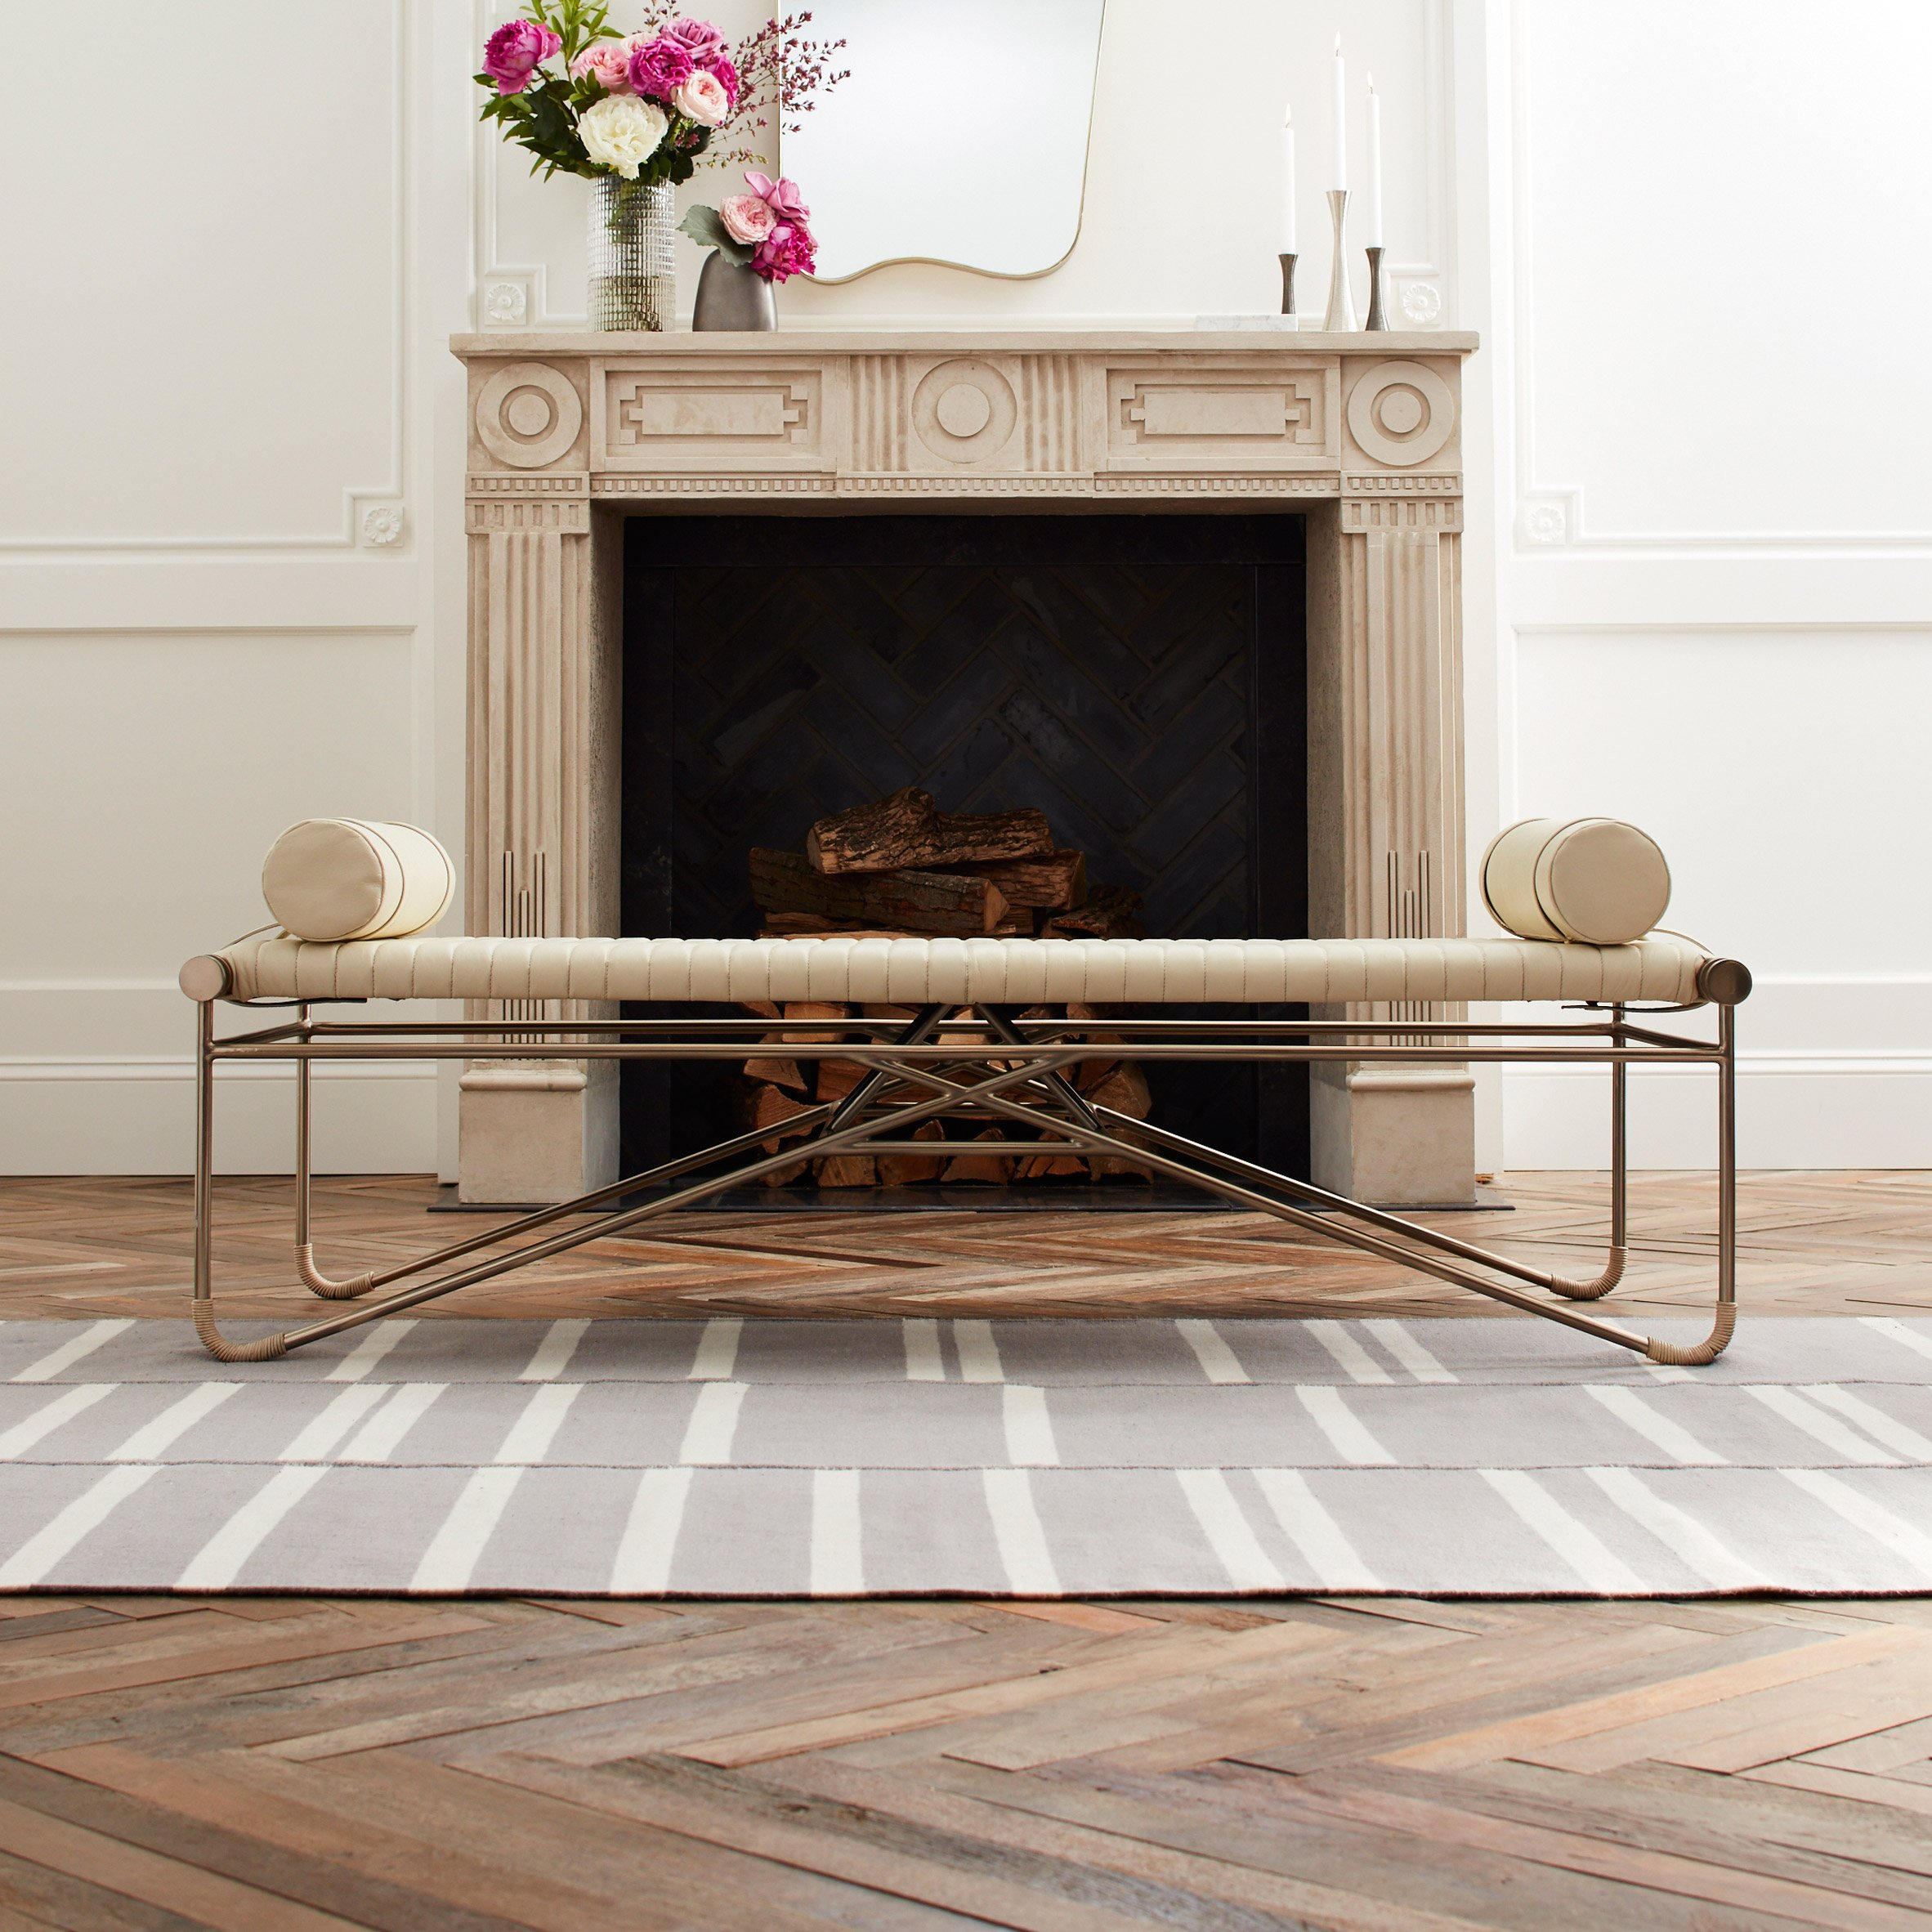 Gwyneth paltrows goop brand launches first home collection with cb2